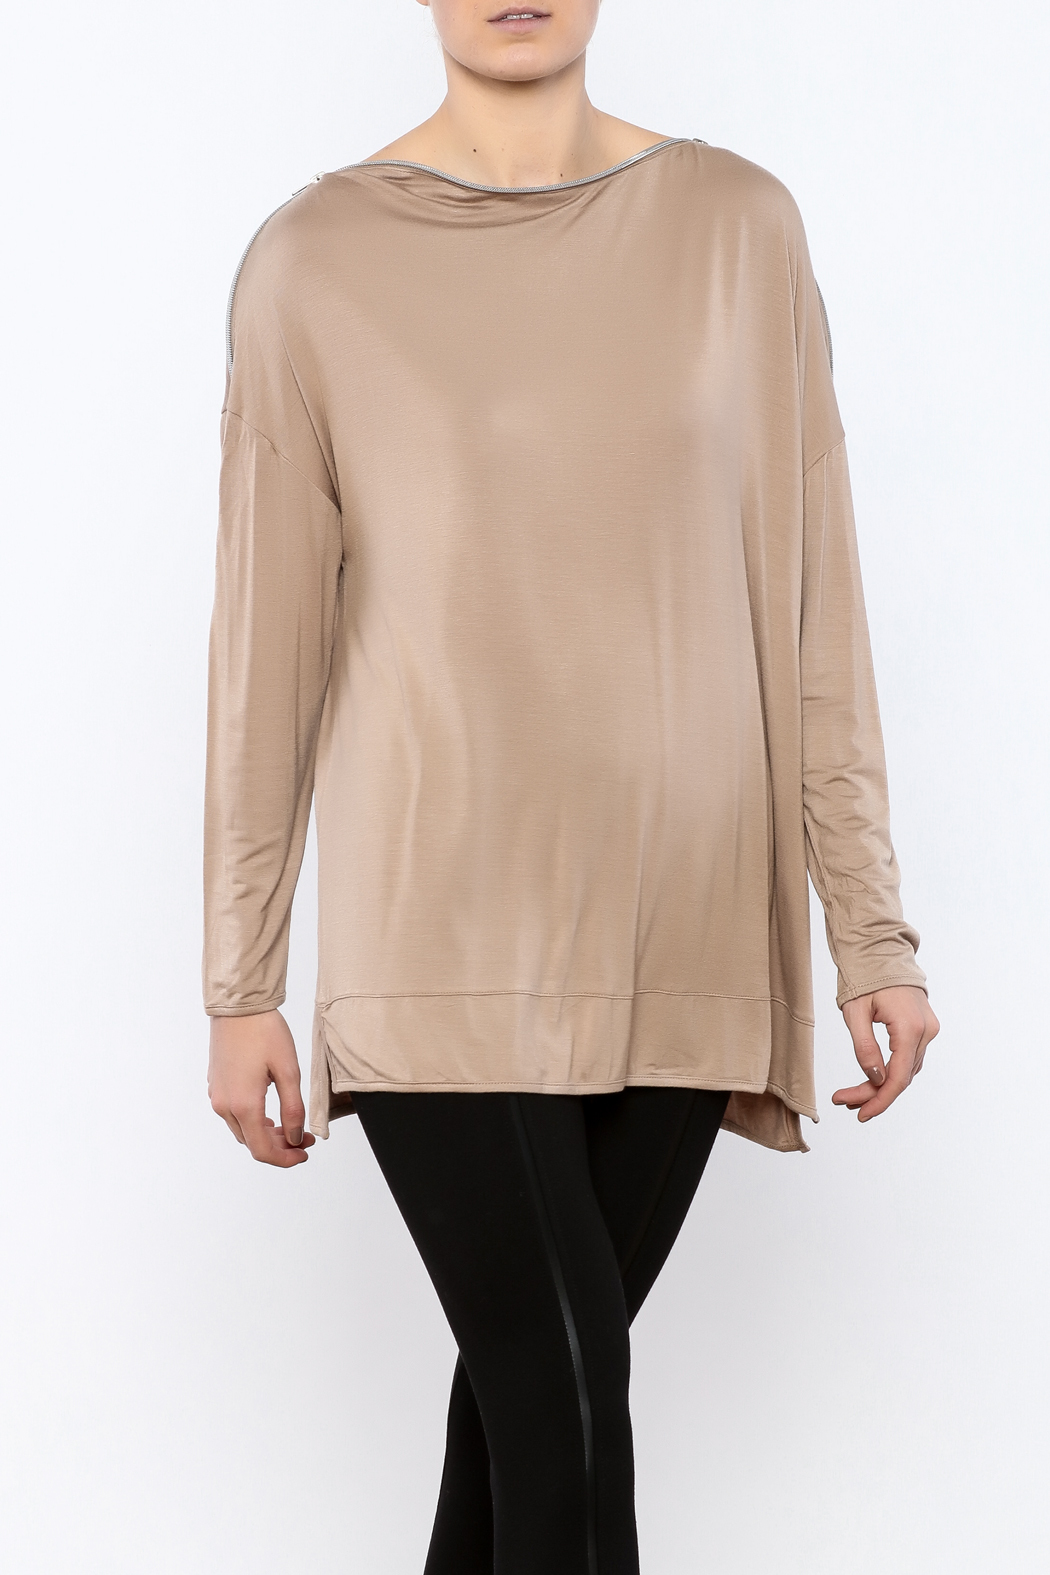 Simply Noelle Zipper Neck Top - Front Cropped Image